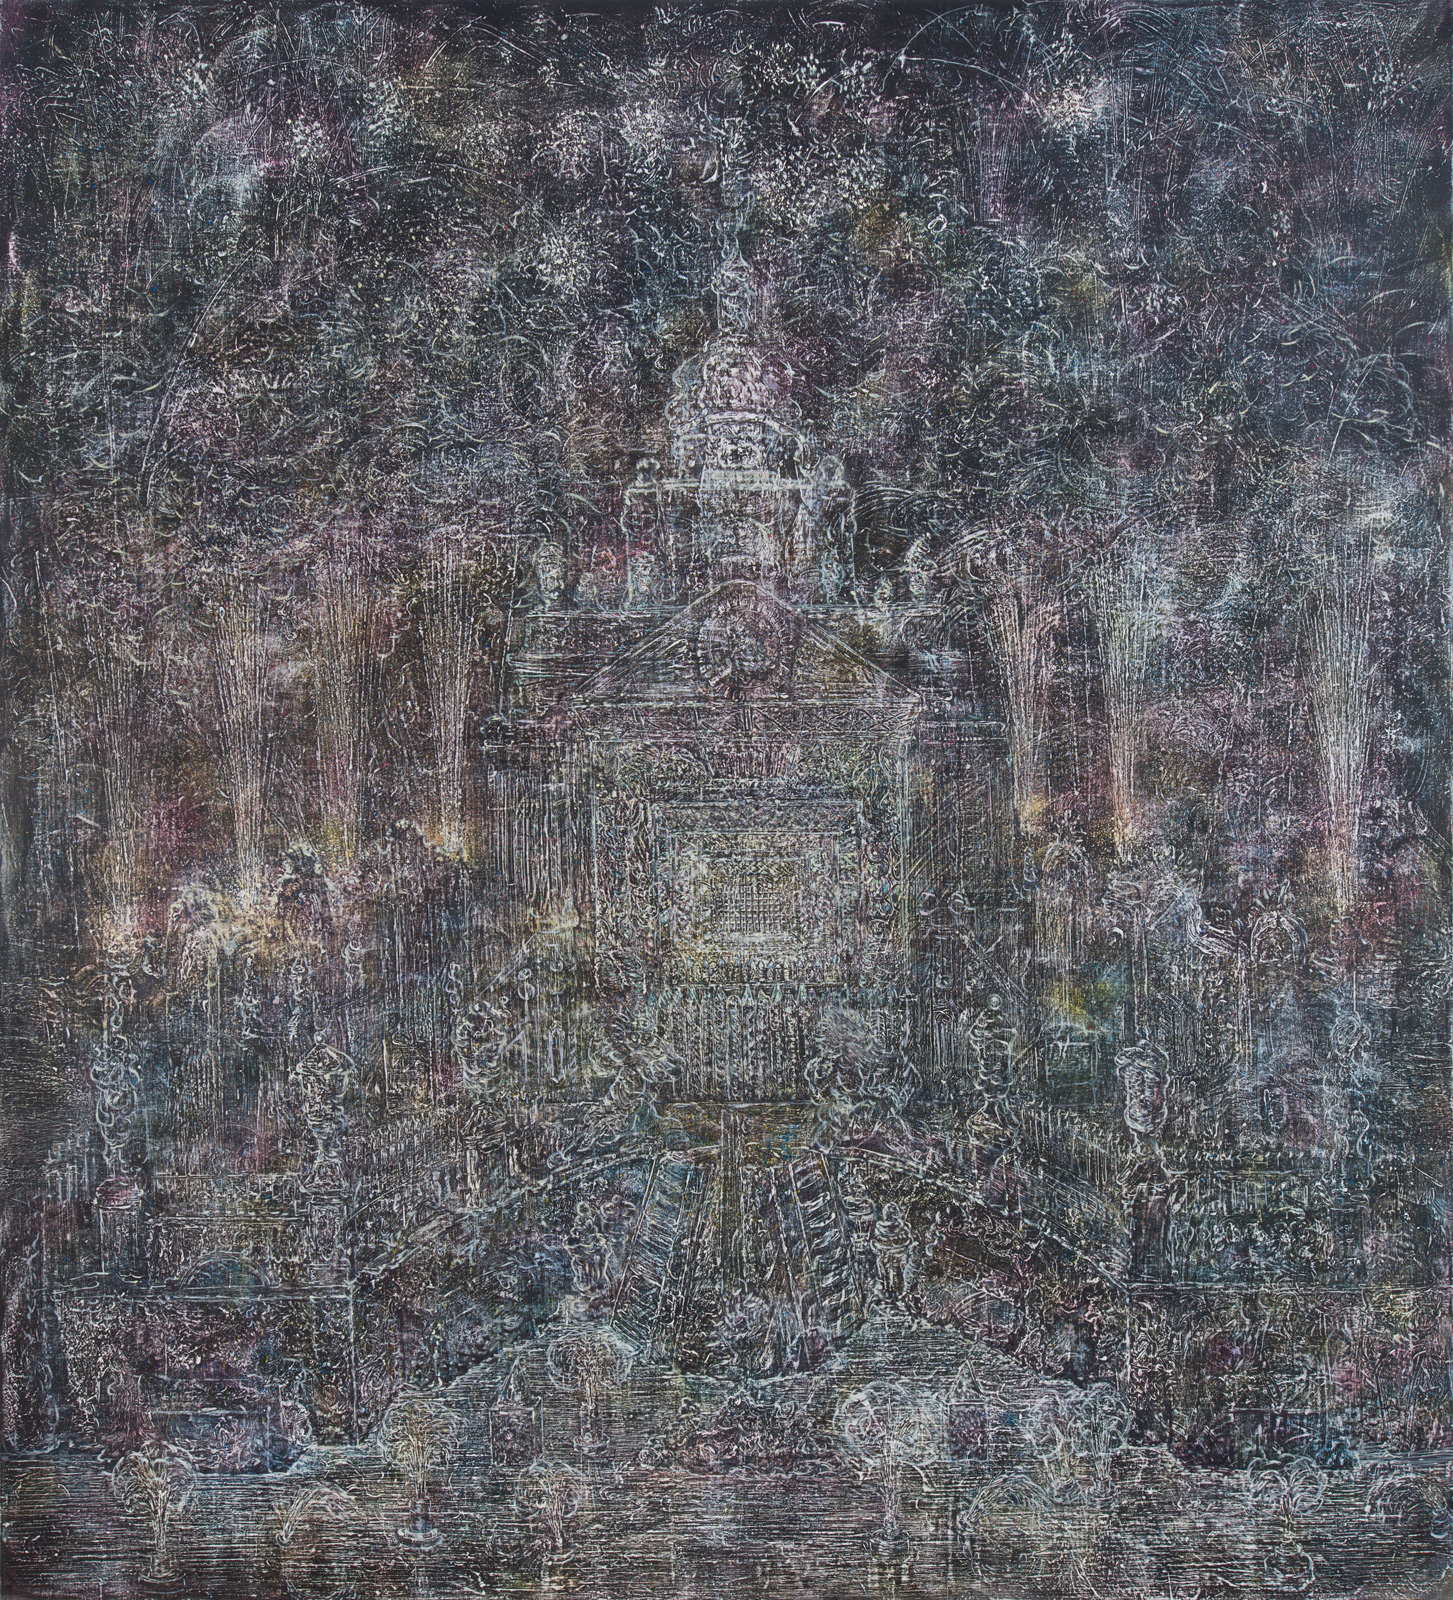 Marin Majić 2016